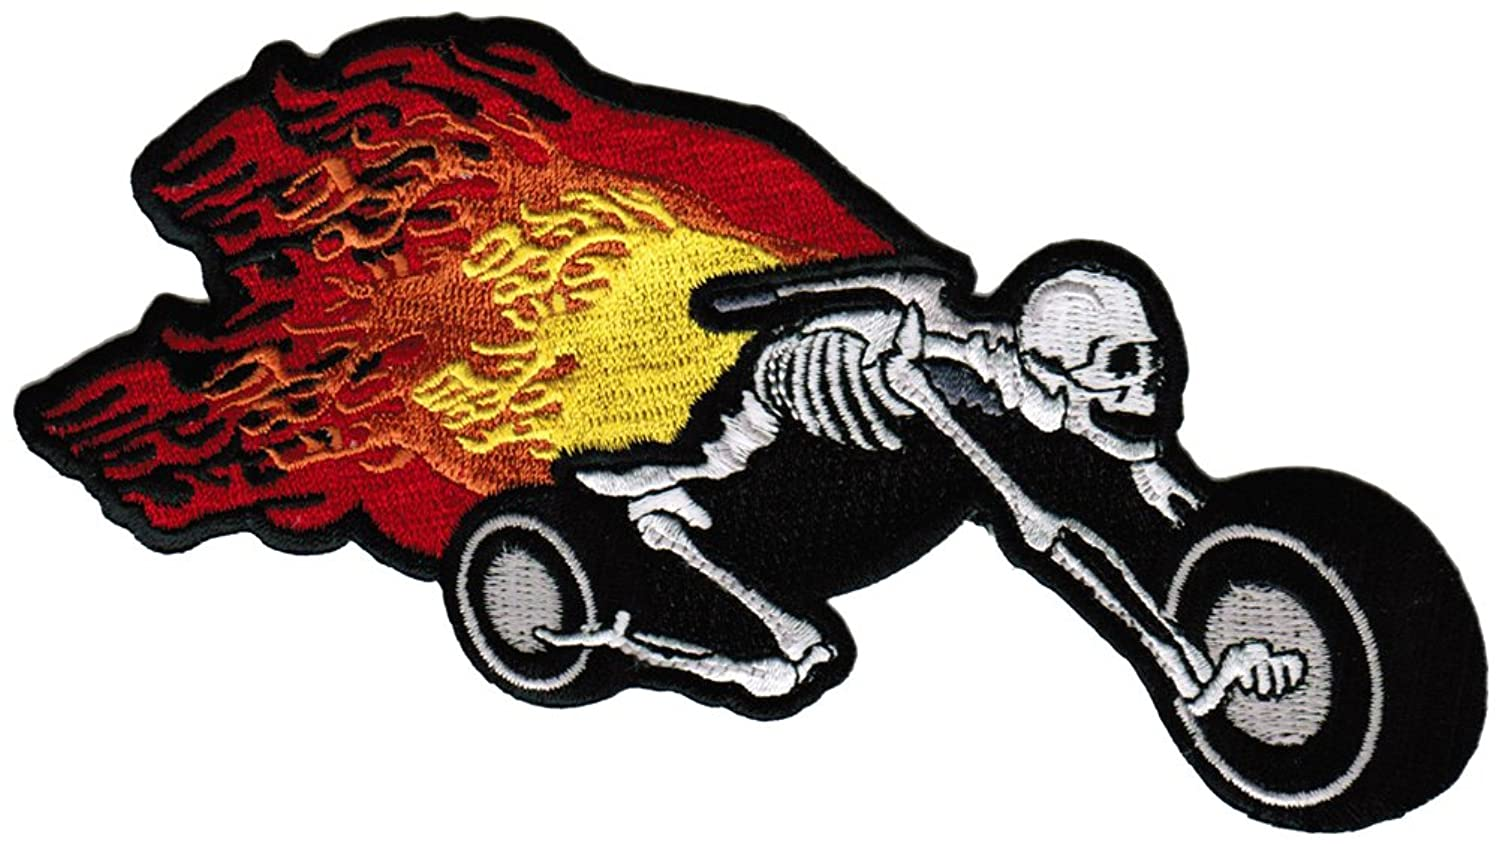 Motorcycle clip art with flames - Amazon Com Flaming Skeleton Chopper Patch Embroidered Skull Motorcycle Flames Biker Emblem Clothing